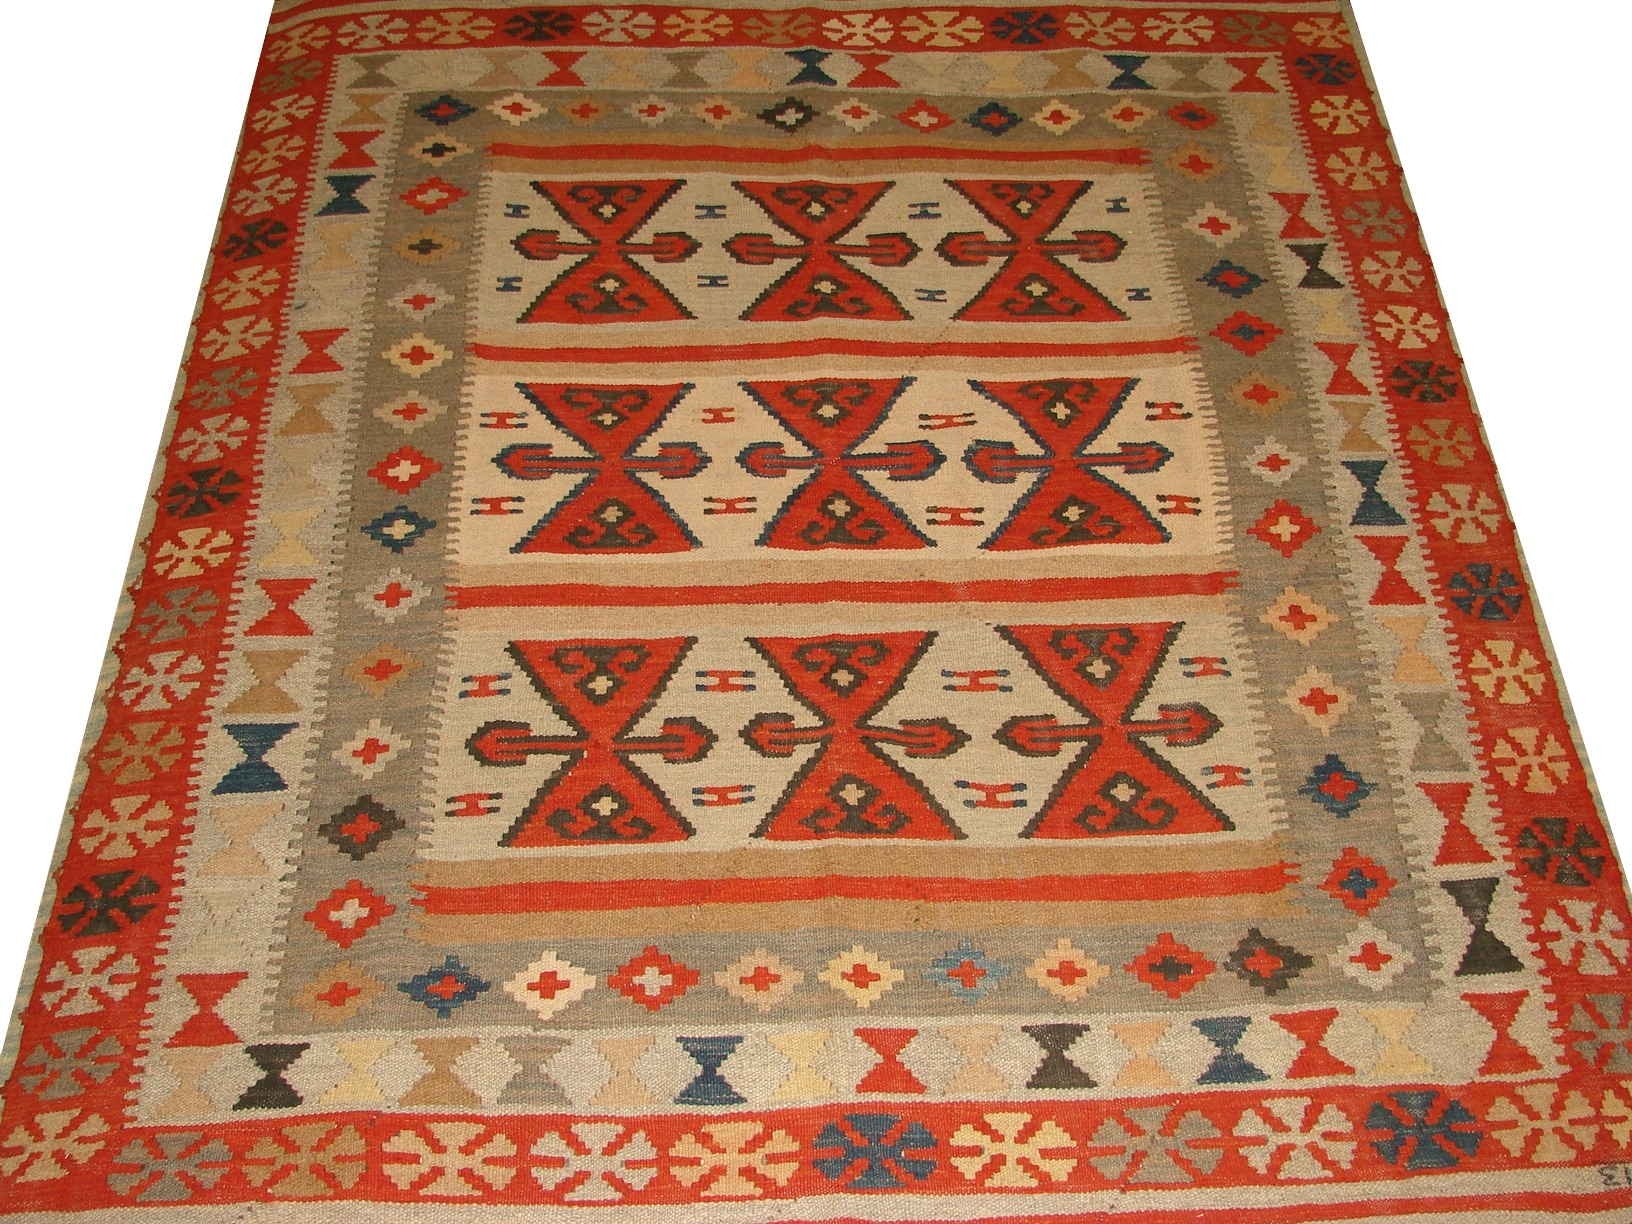 5x7/8 Flat Weave Hand Knotted Wool Area Rug - MR13325